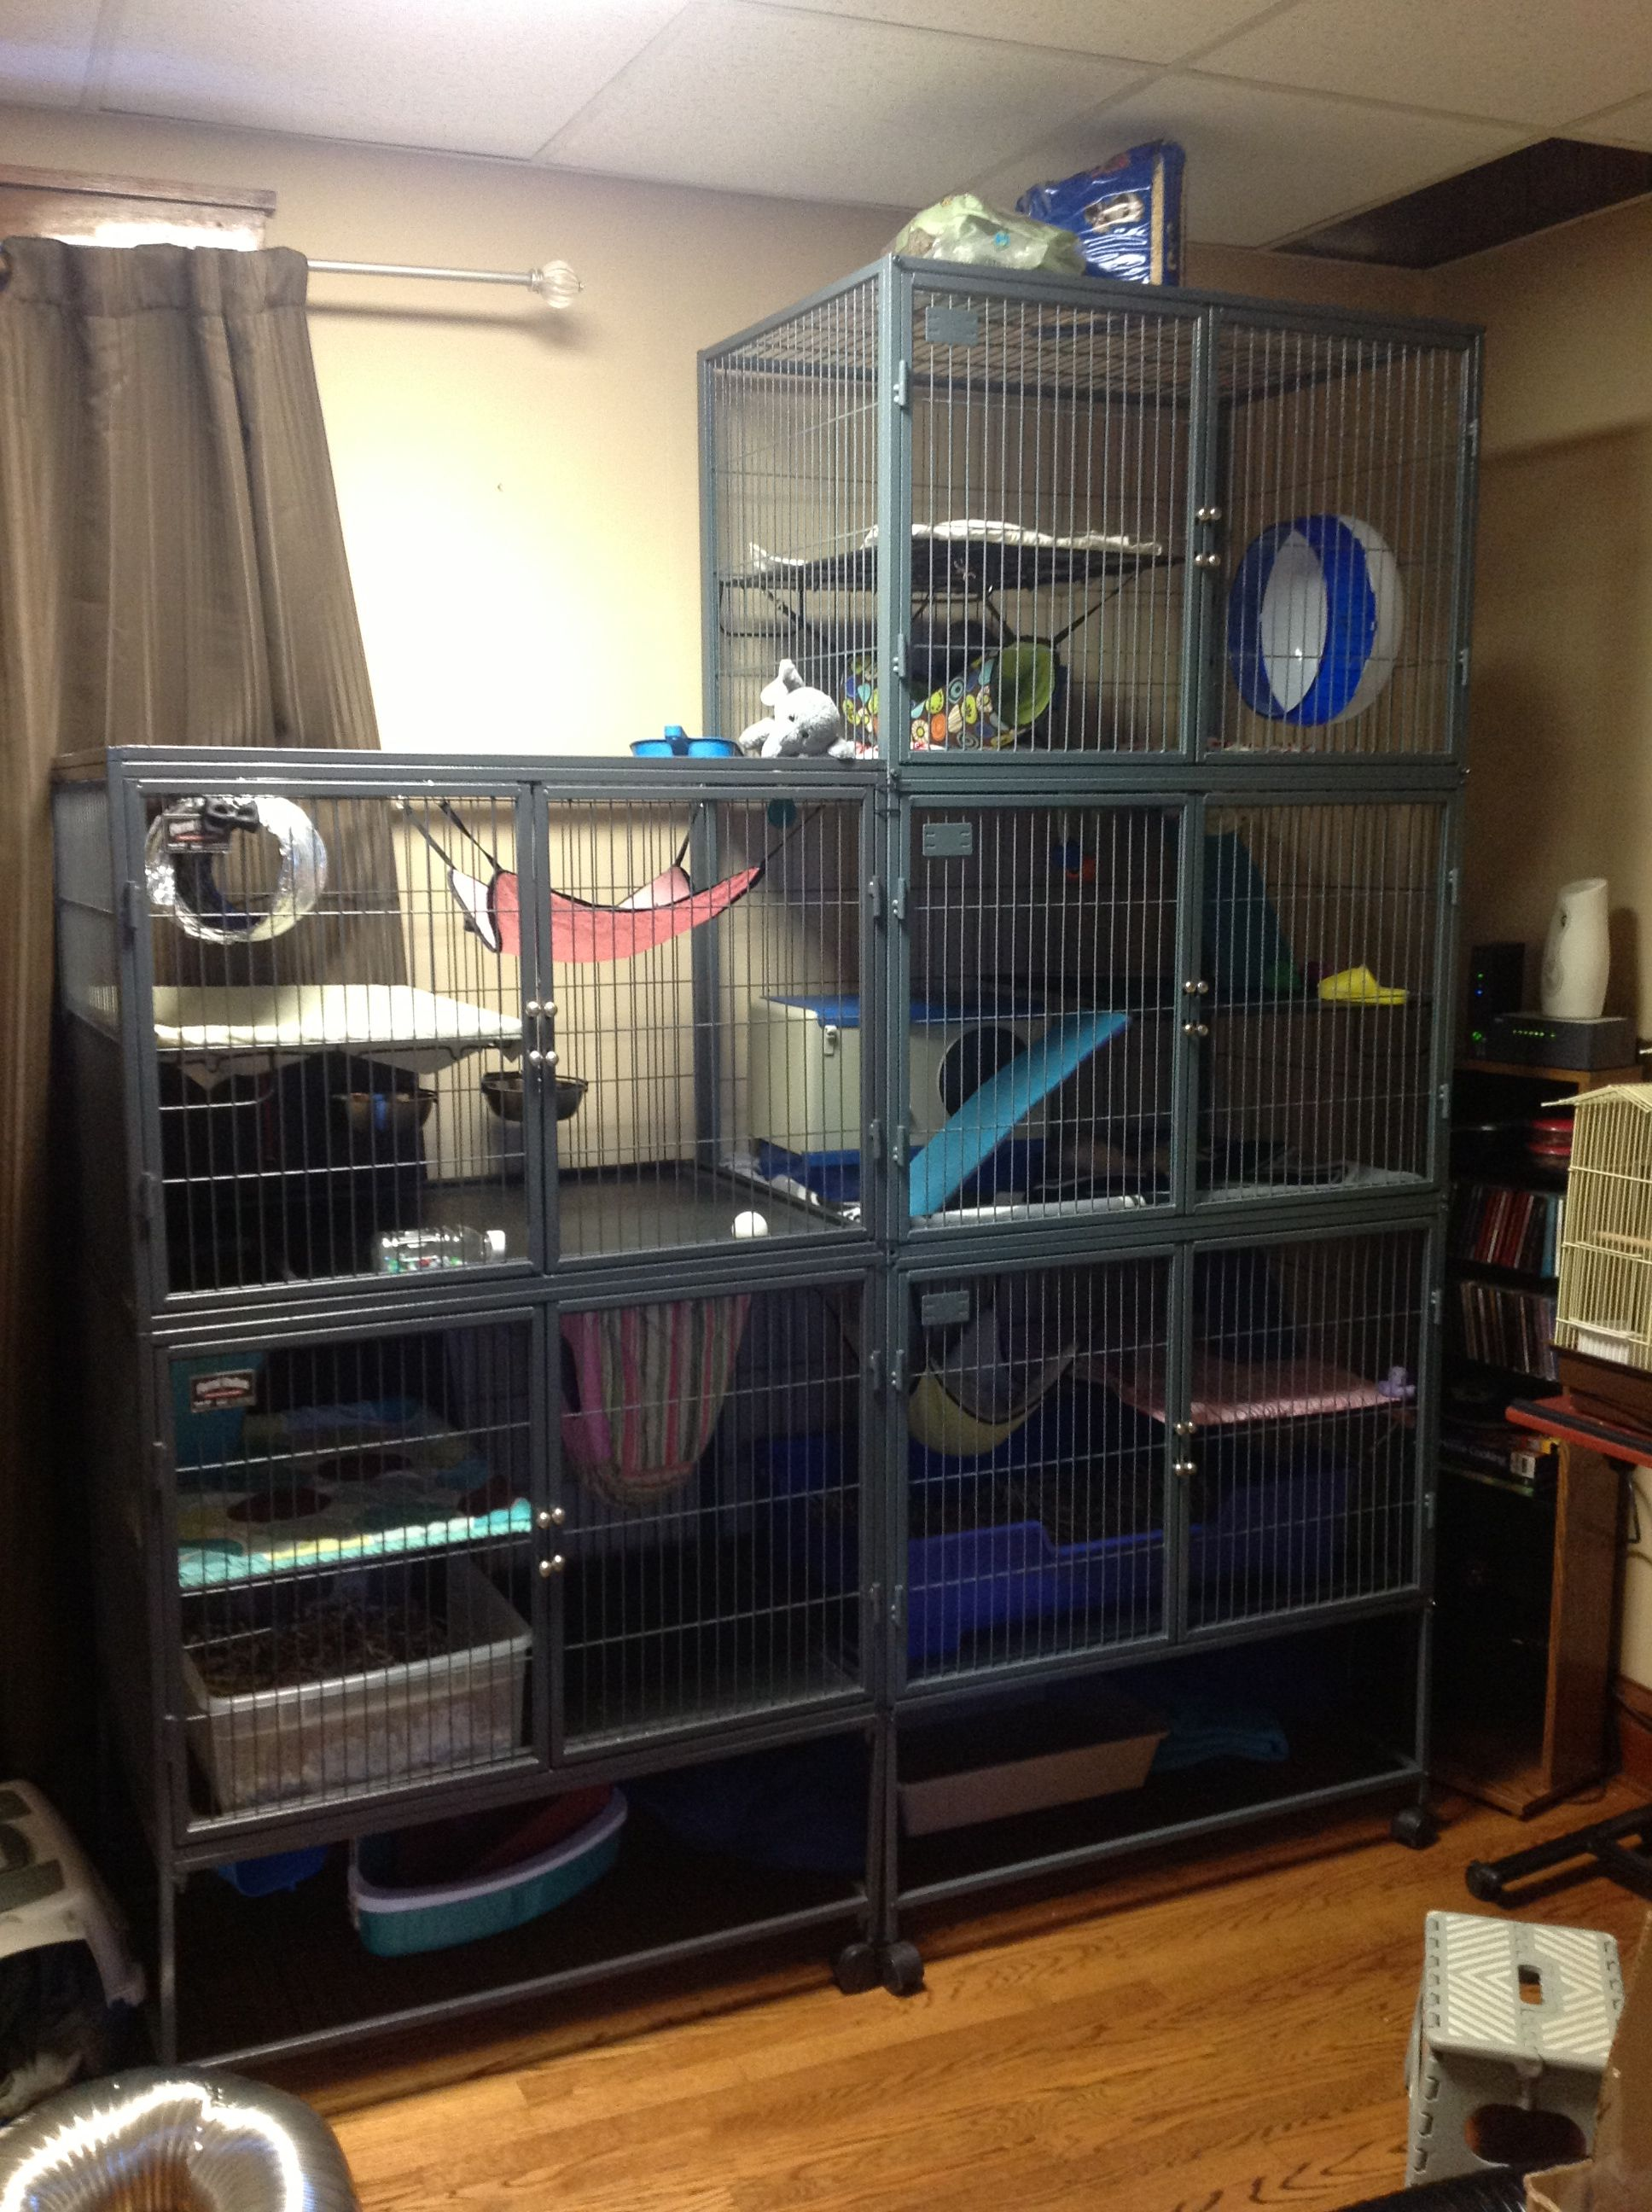 Pin By Jess Compton On Ferrets My Small Business Ferret Cage Rat Cage Ferret Cage Diy